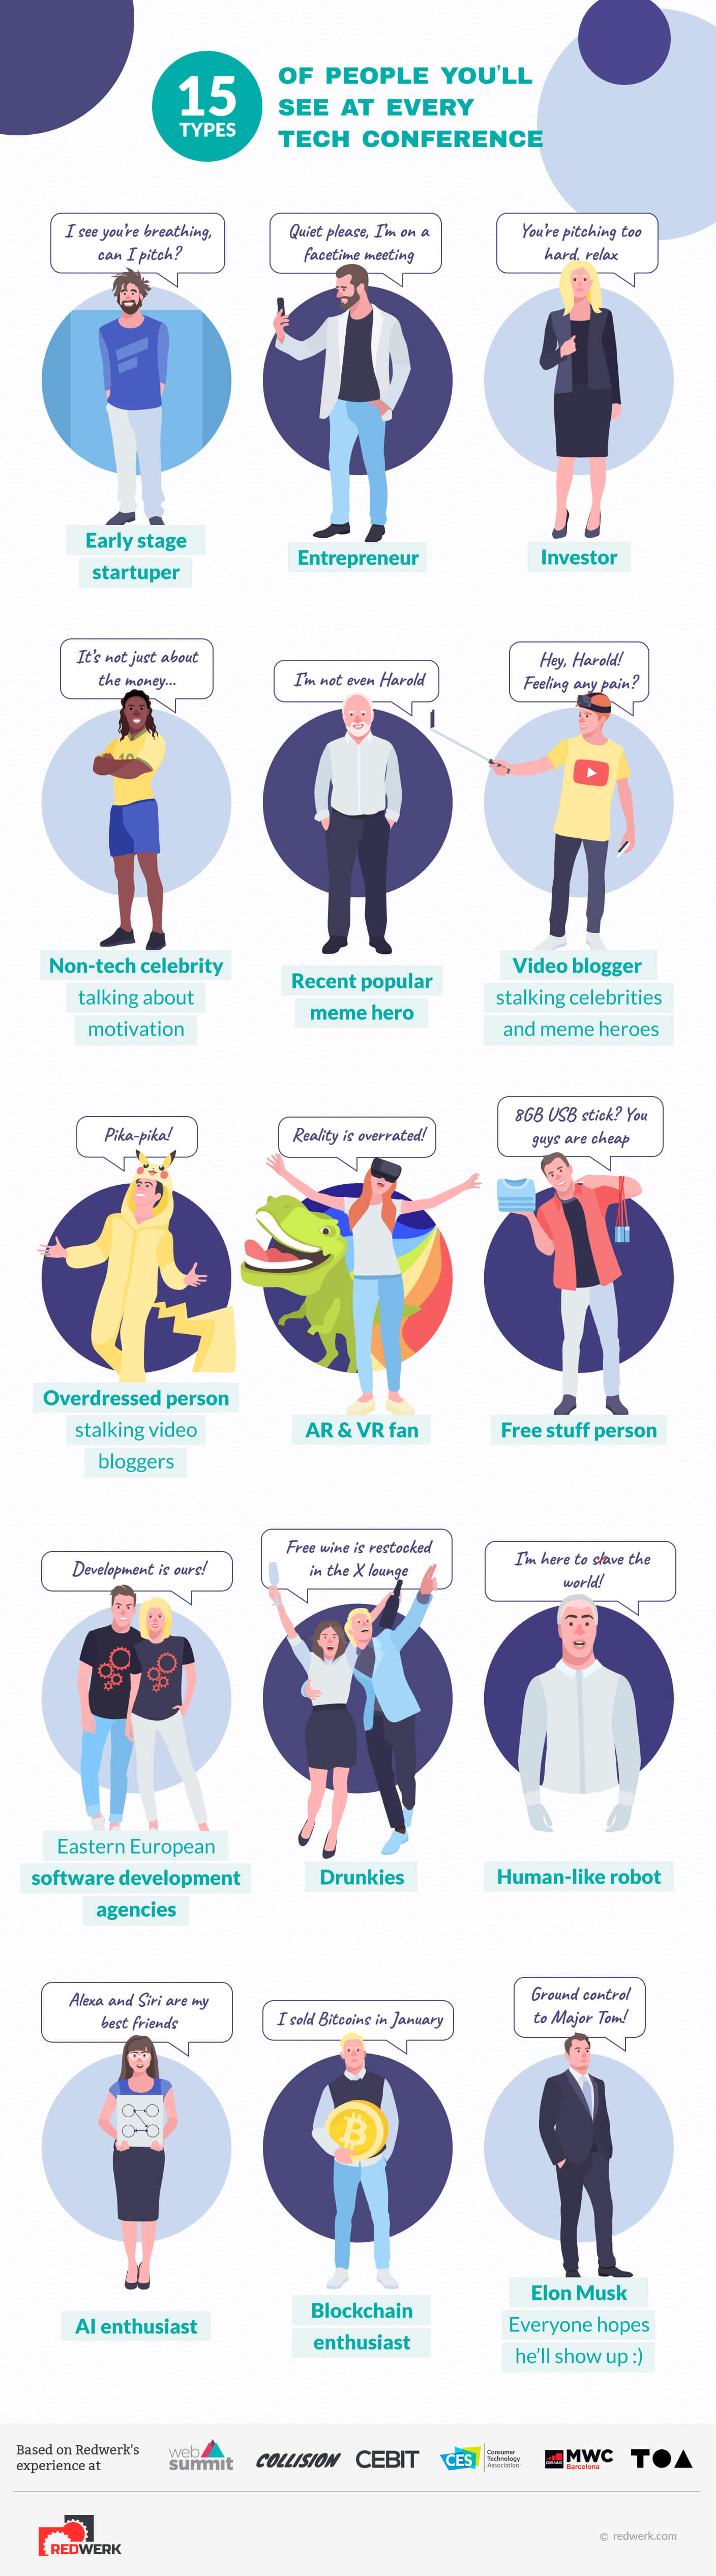 15-types-of-people-on-tech-conferences-infographic-plaza